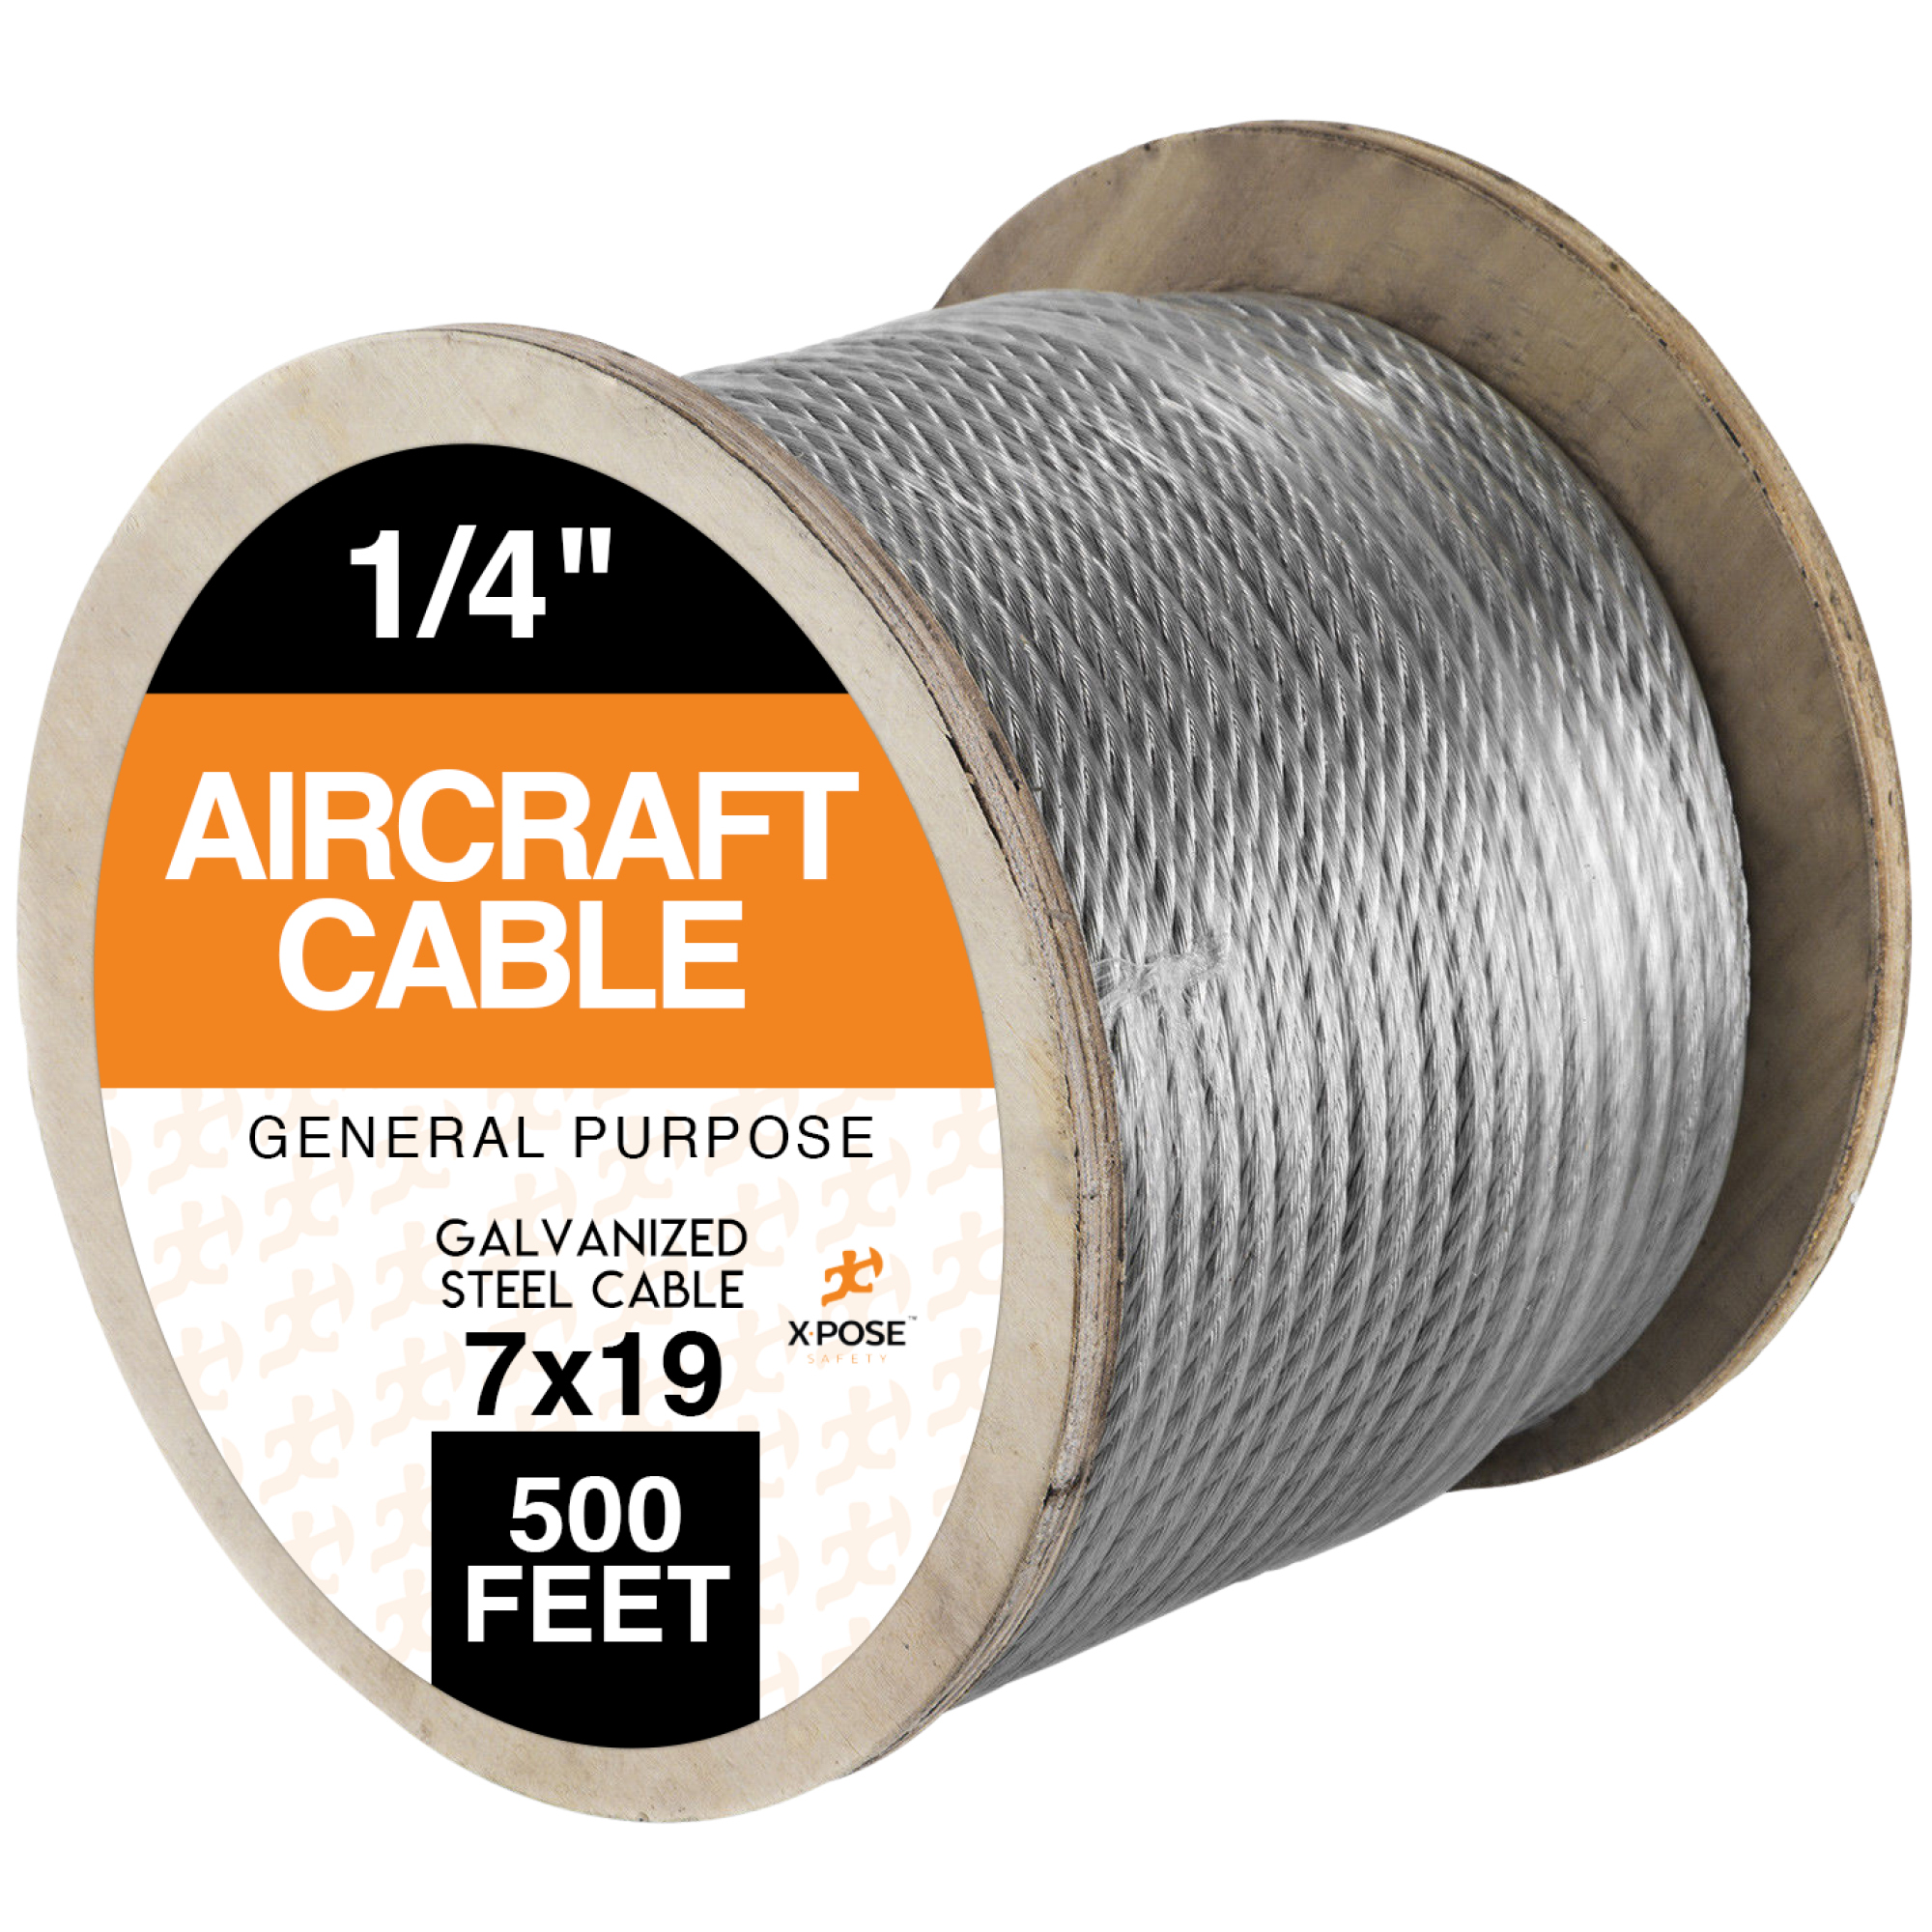 Galvanized Steel Aircraft Cable Wire, 7x19 Strand Core1/4-in x 500 GWS-500